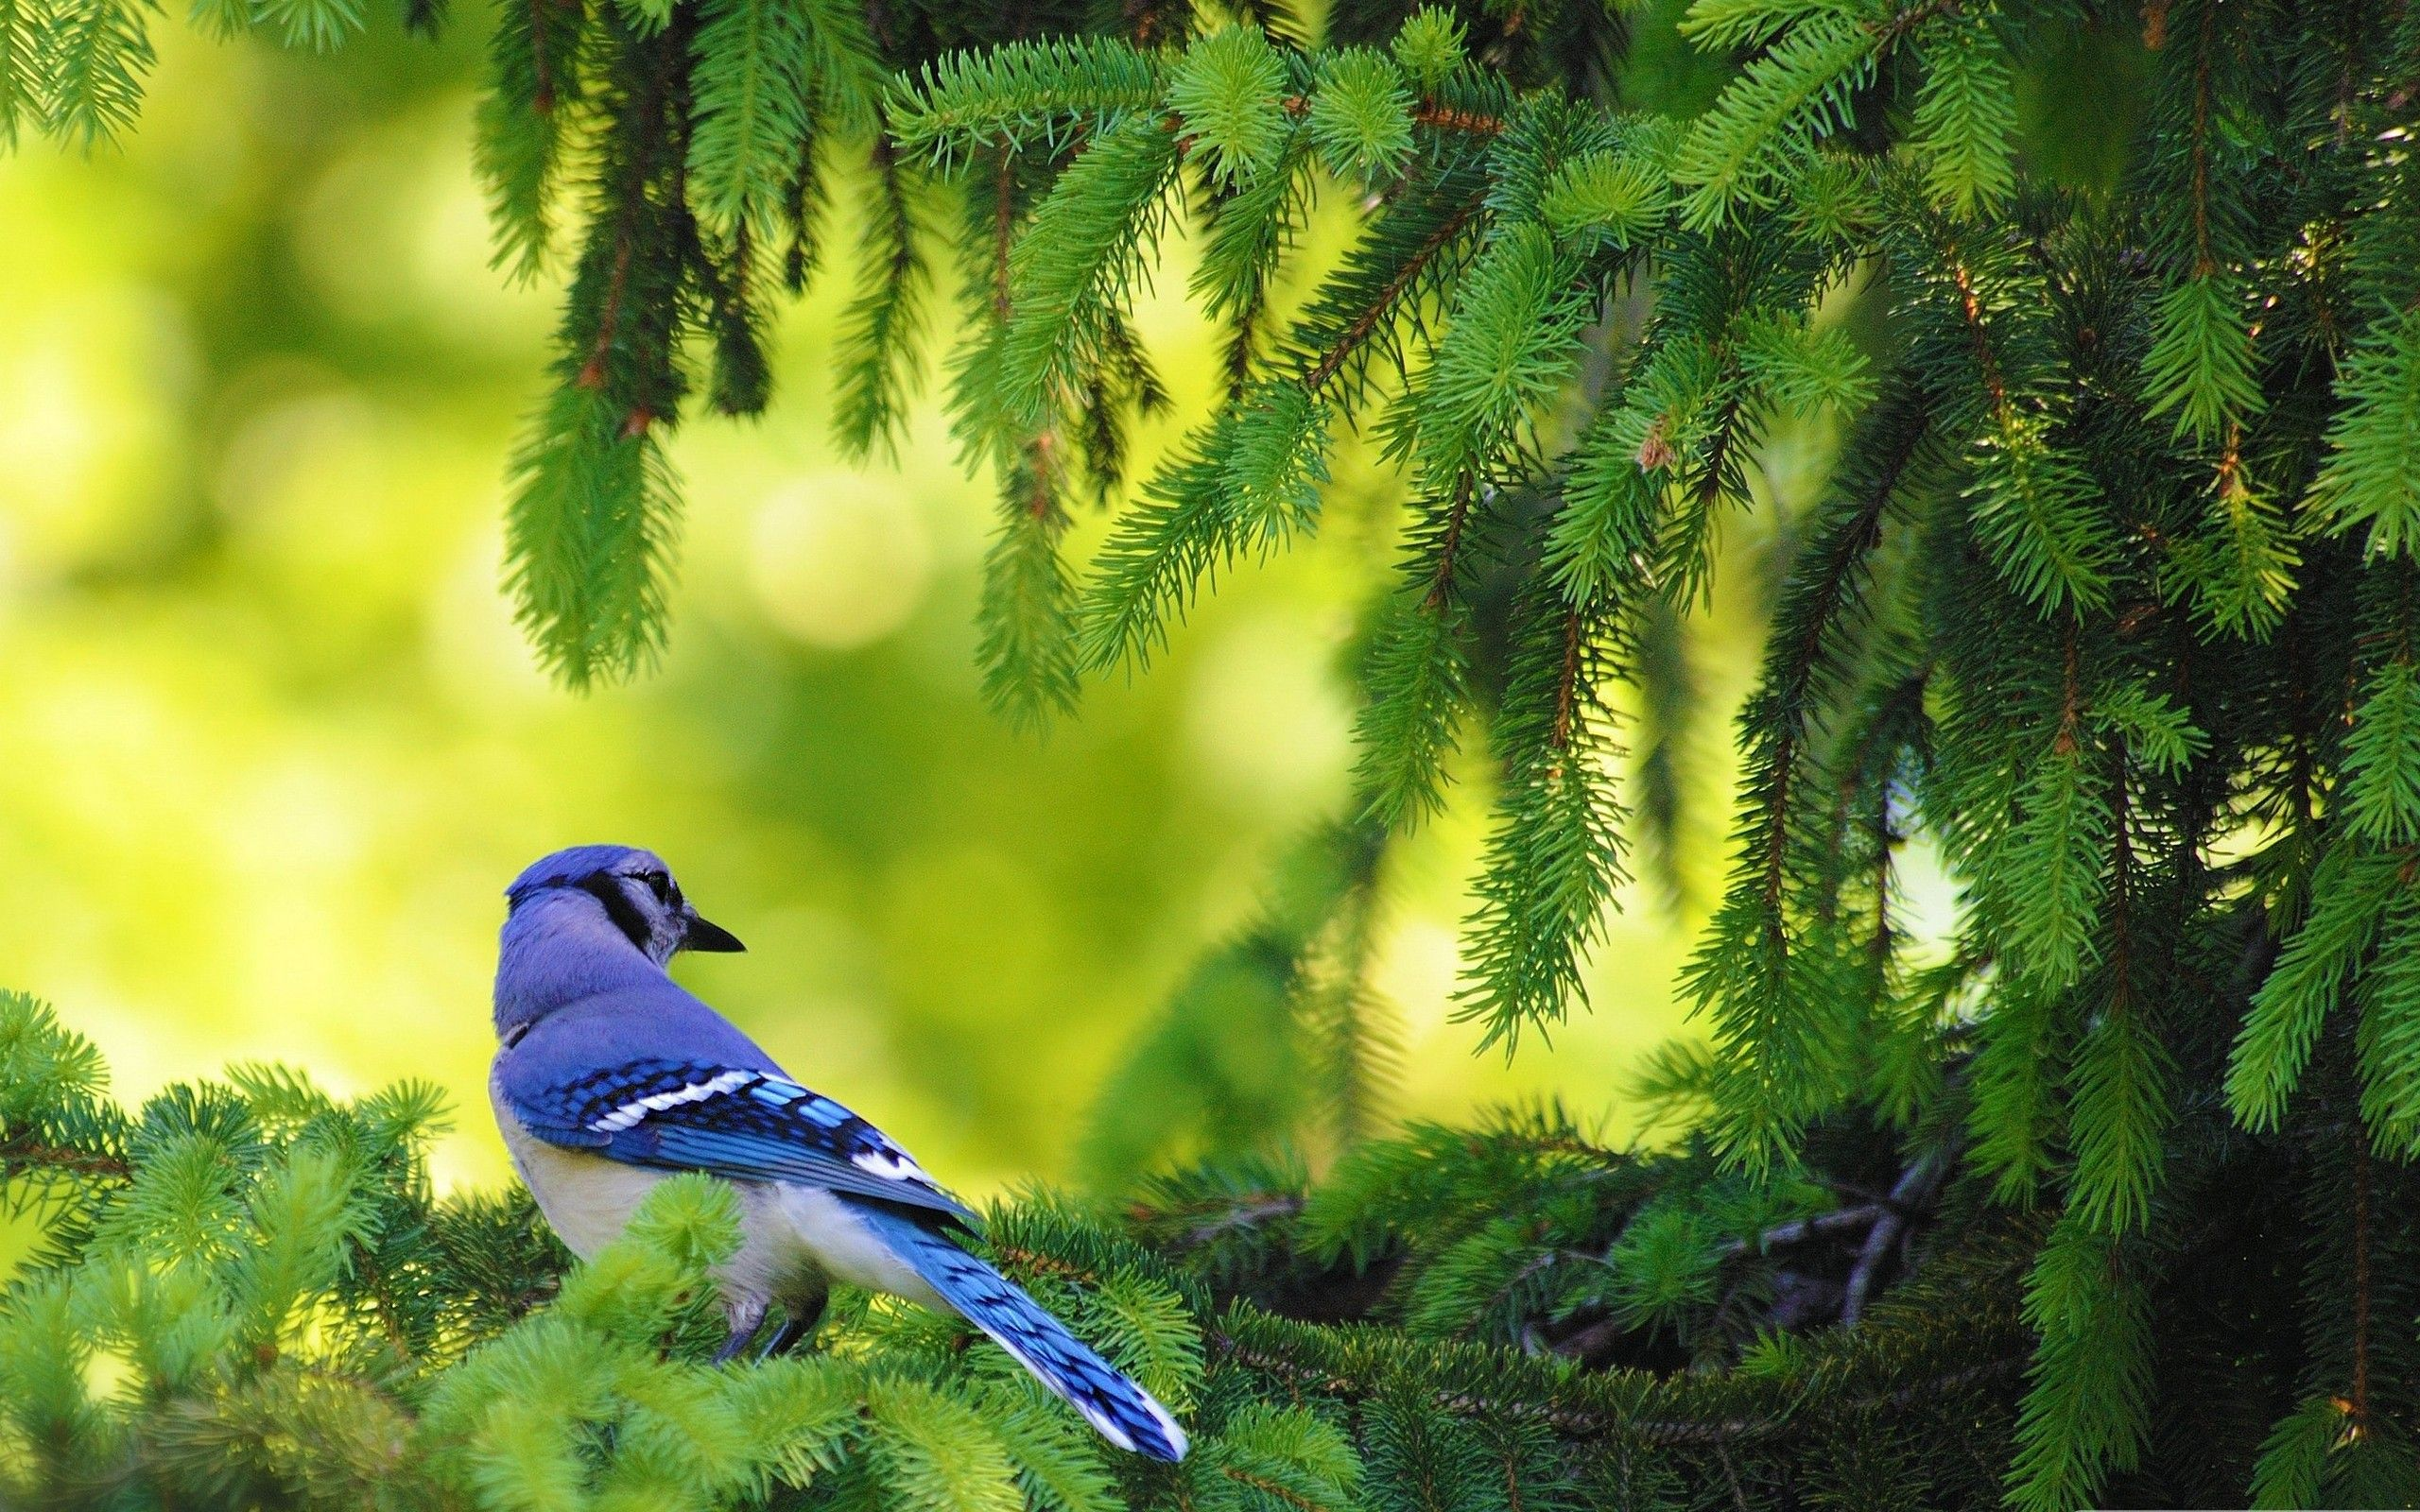 Natural birds hd wallpaper download awesome nice and high for Looking for wallpaper